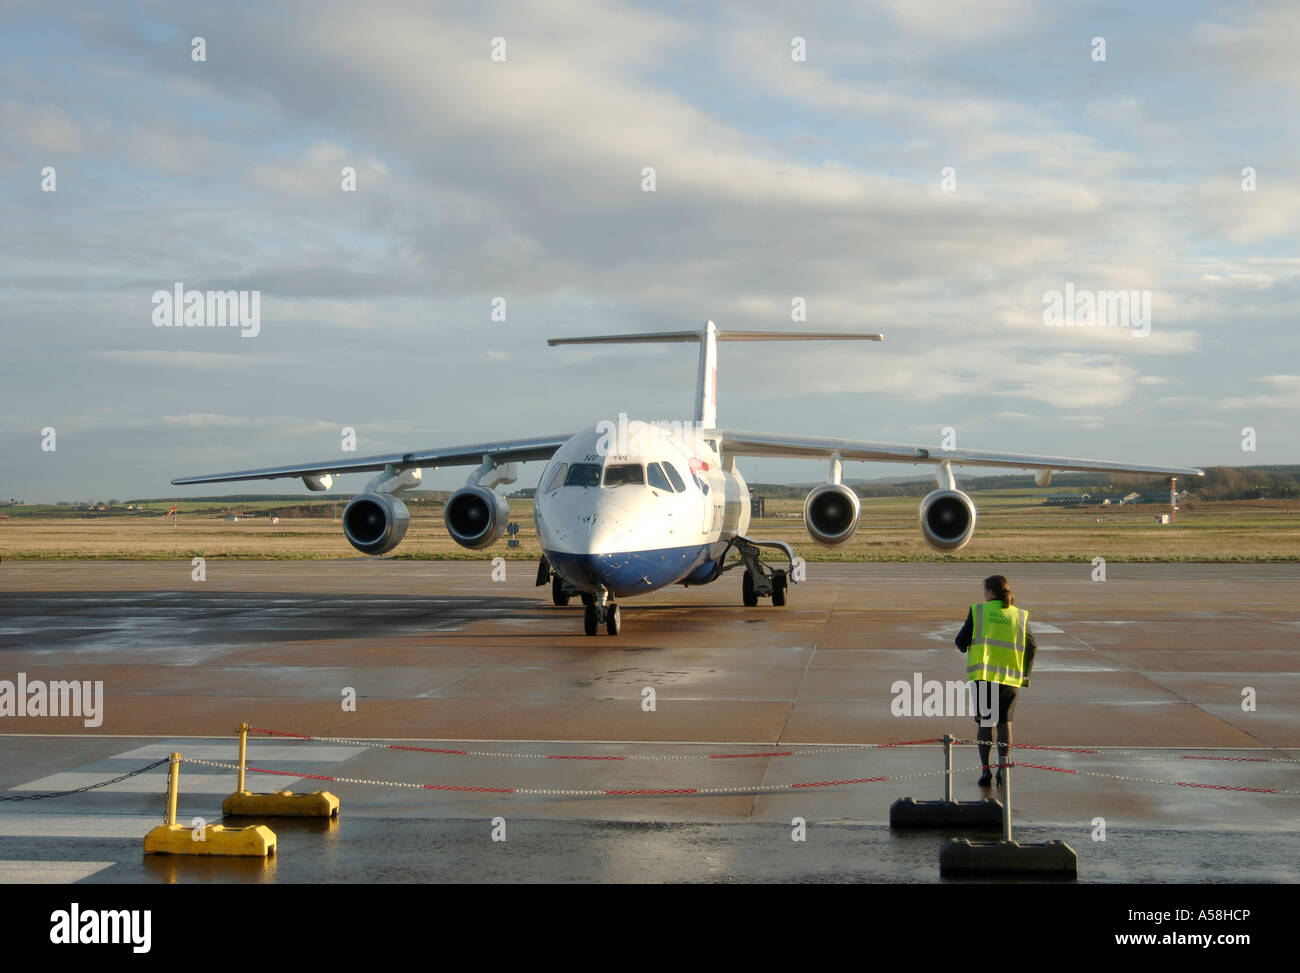 Commercial Passenger jet BAE 146-300 at Inverness Dalcross Airport.  XAV 4880-457 Stock Photo